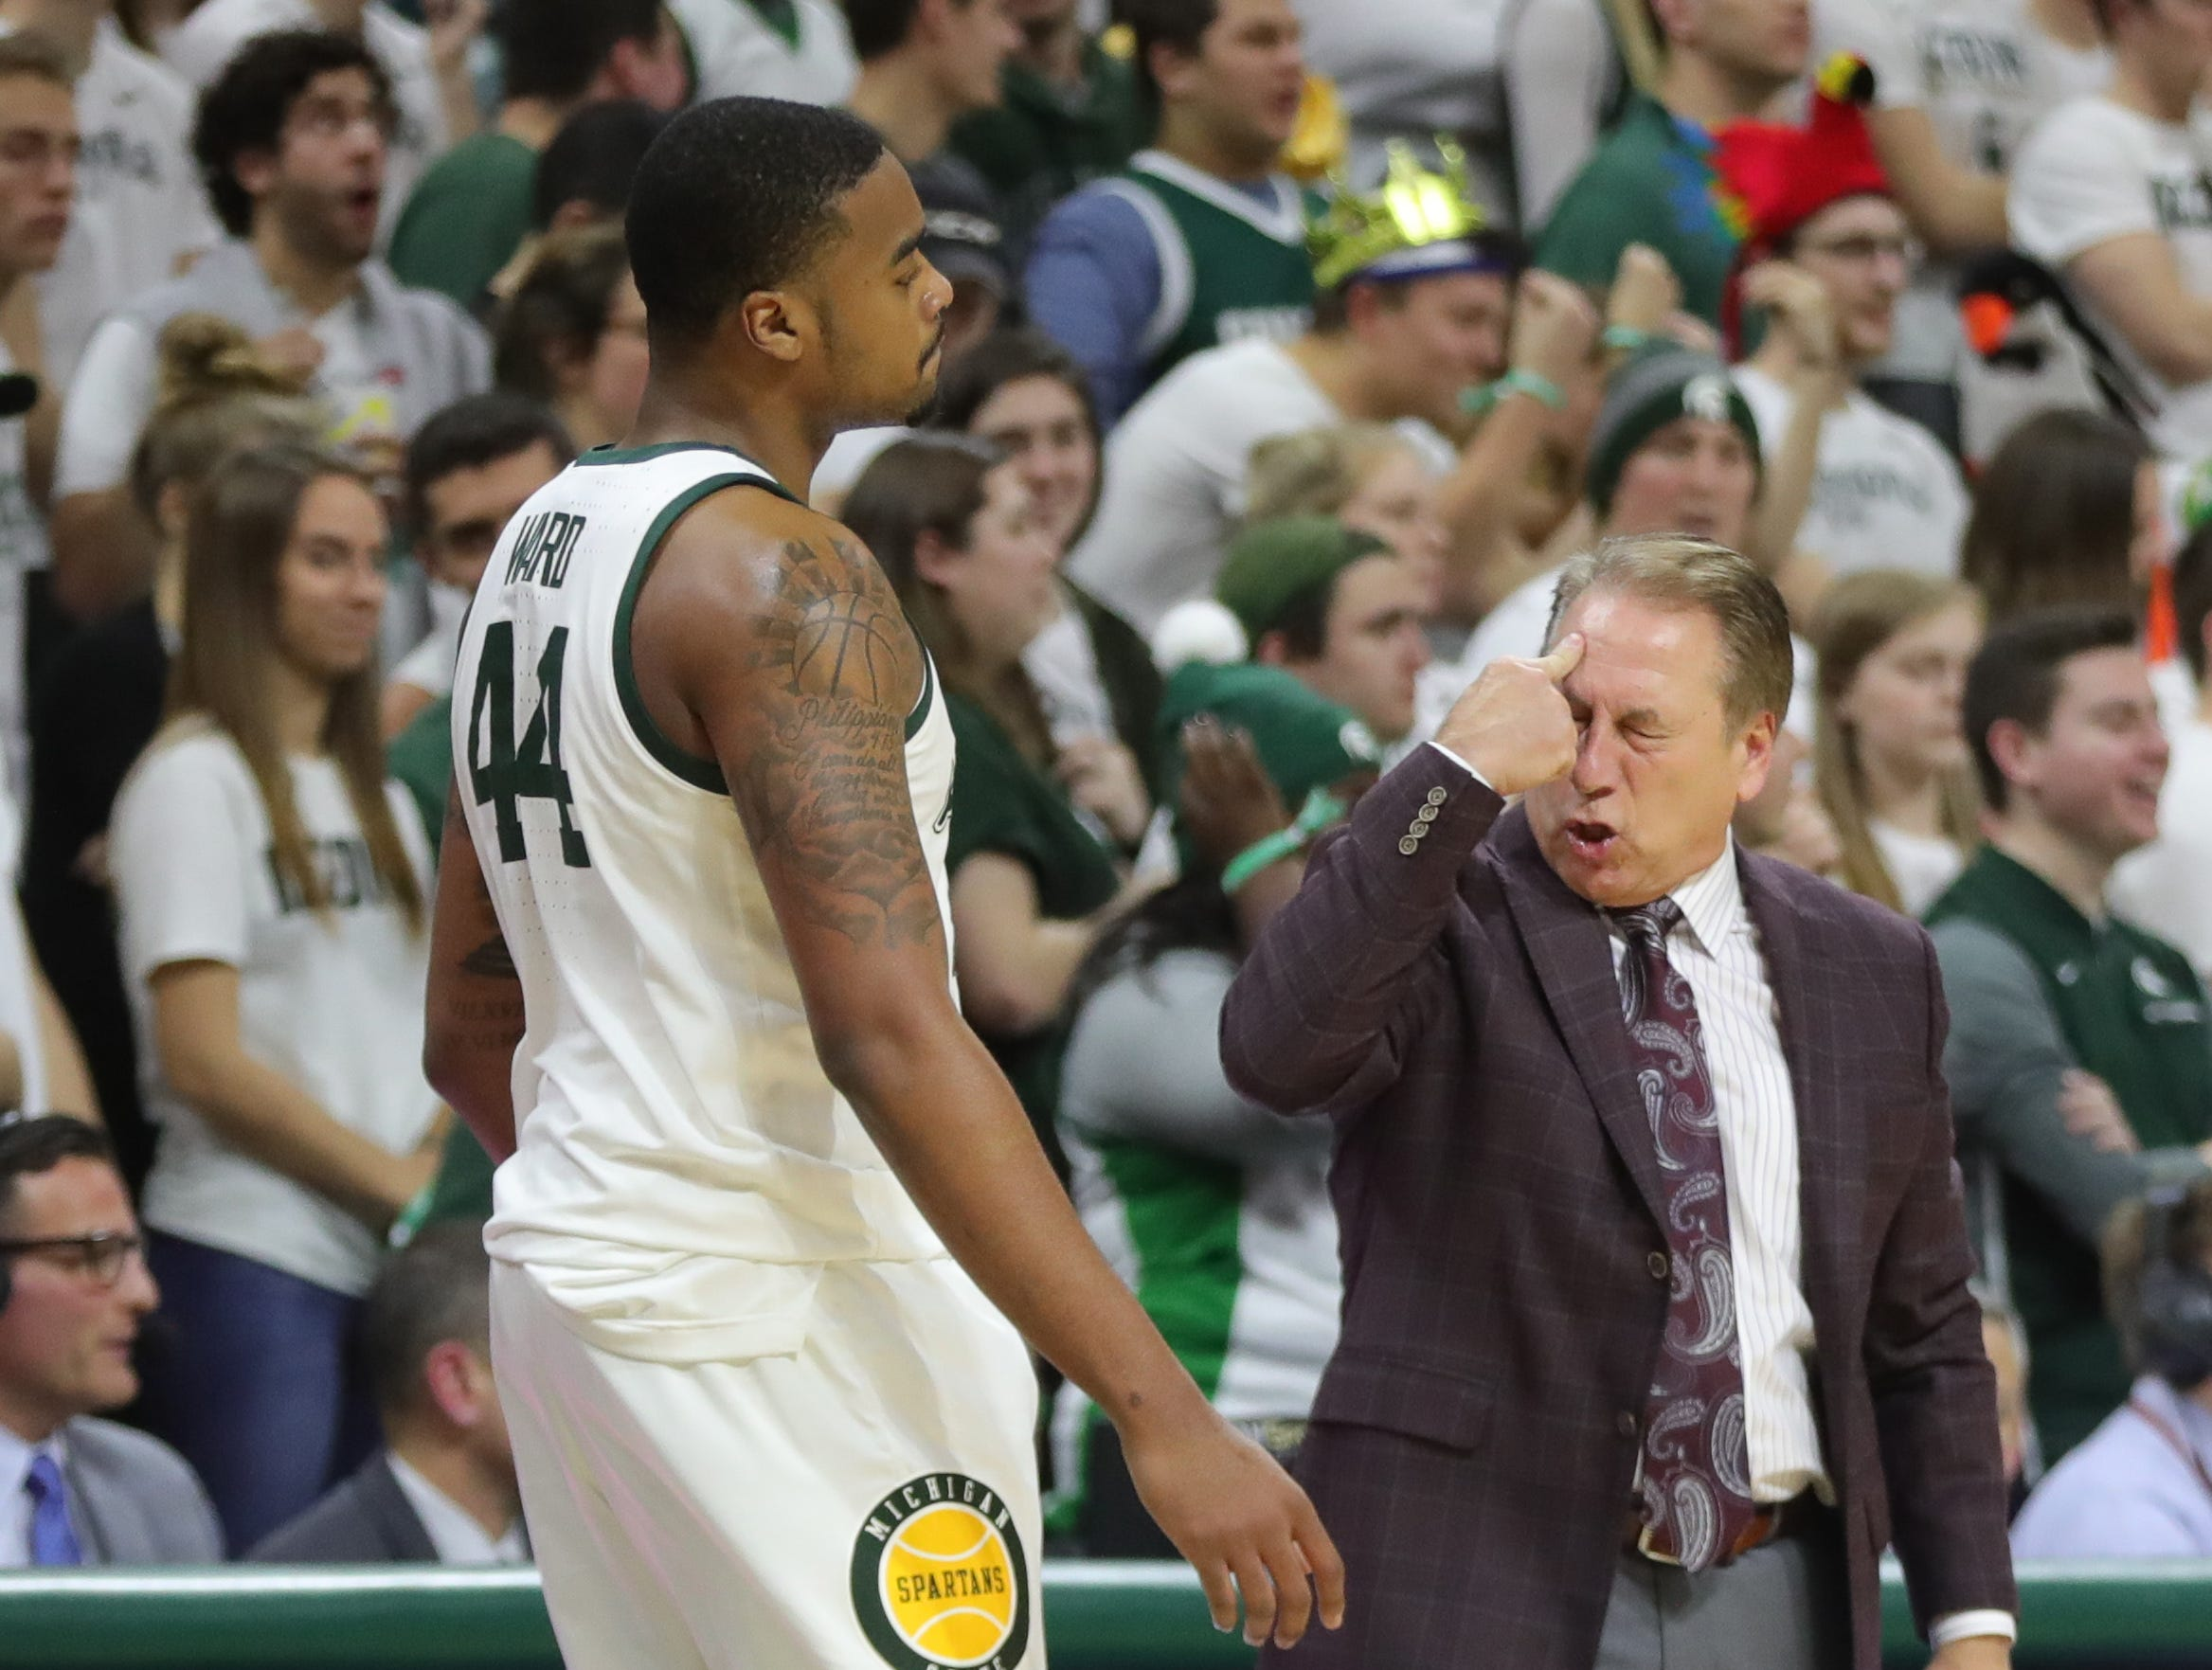 Michigan State head coach Tom Izzo has words with Nick Ward during second half action against Iowa Monday, December 3, 2018 at the Breslin Center in East Lansing, Mich.